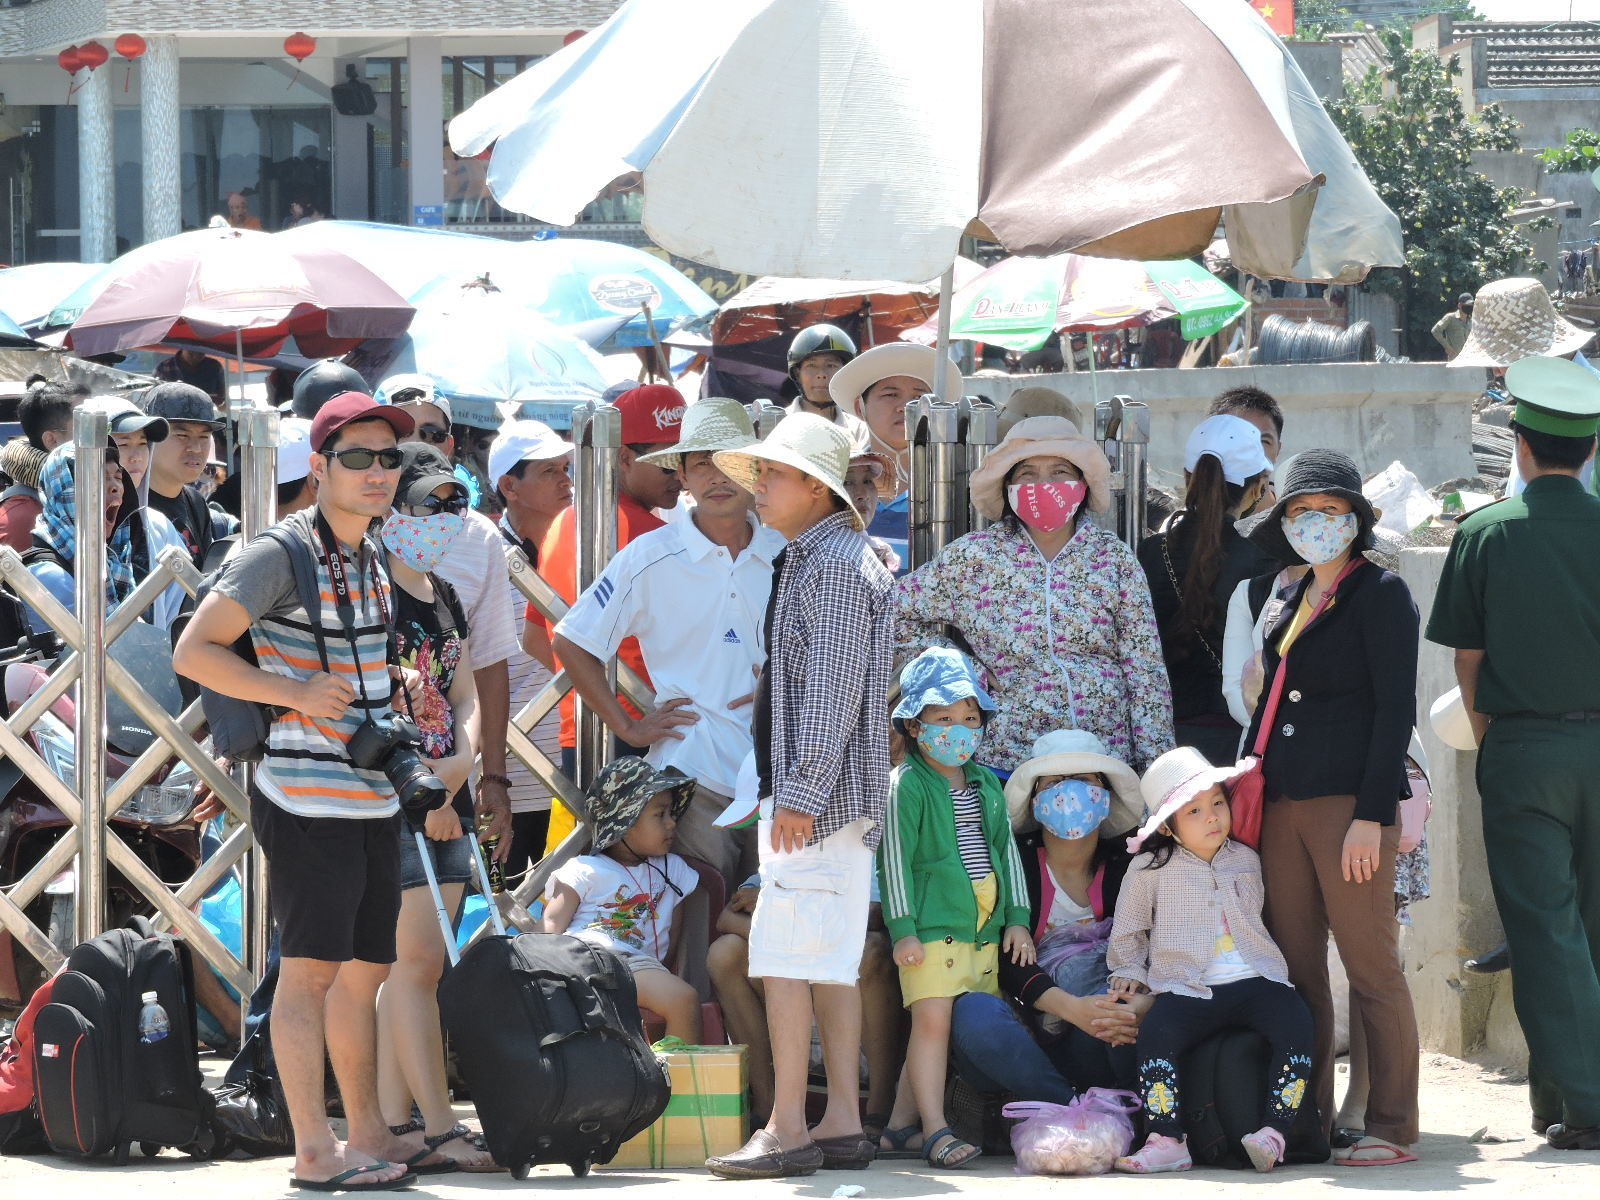 Ly Ben full of tourists: 3000 seats receive 12,000 people